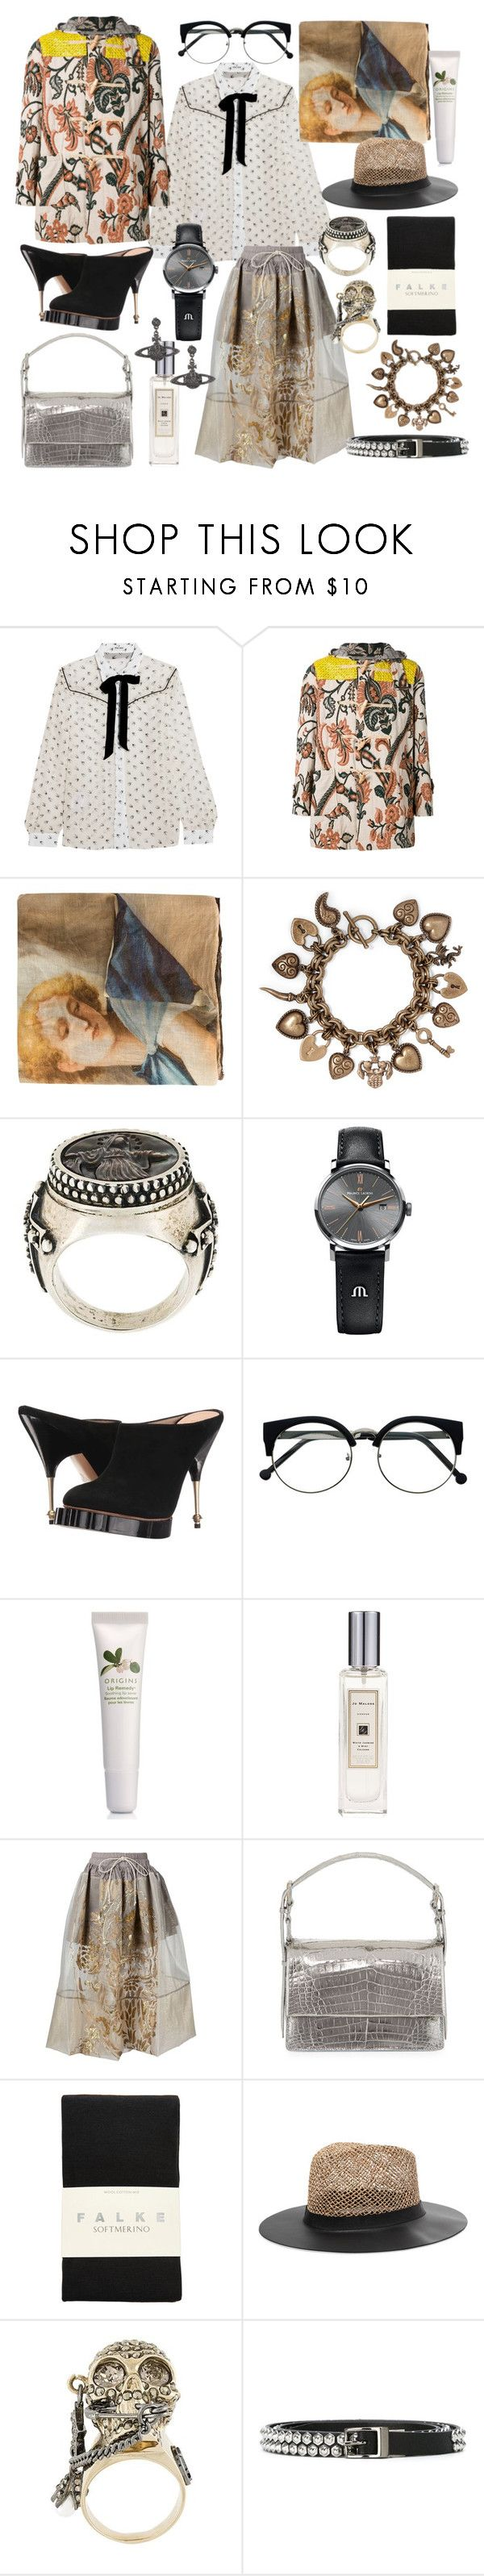 """""""the sun in my soul wants to see u"""" by nothingisnormal ❤ liked on Polyvore featuring Miu Miu, Vivienne Westwood Gold Label, 813 Ottotredici, Etro, Jean-Paul Gaultier, Maurice Lacroix, Vivienne Westwood, Origins, Jo Malone and Nancy Gonzalez"""